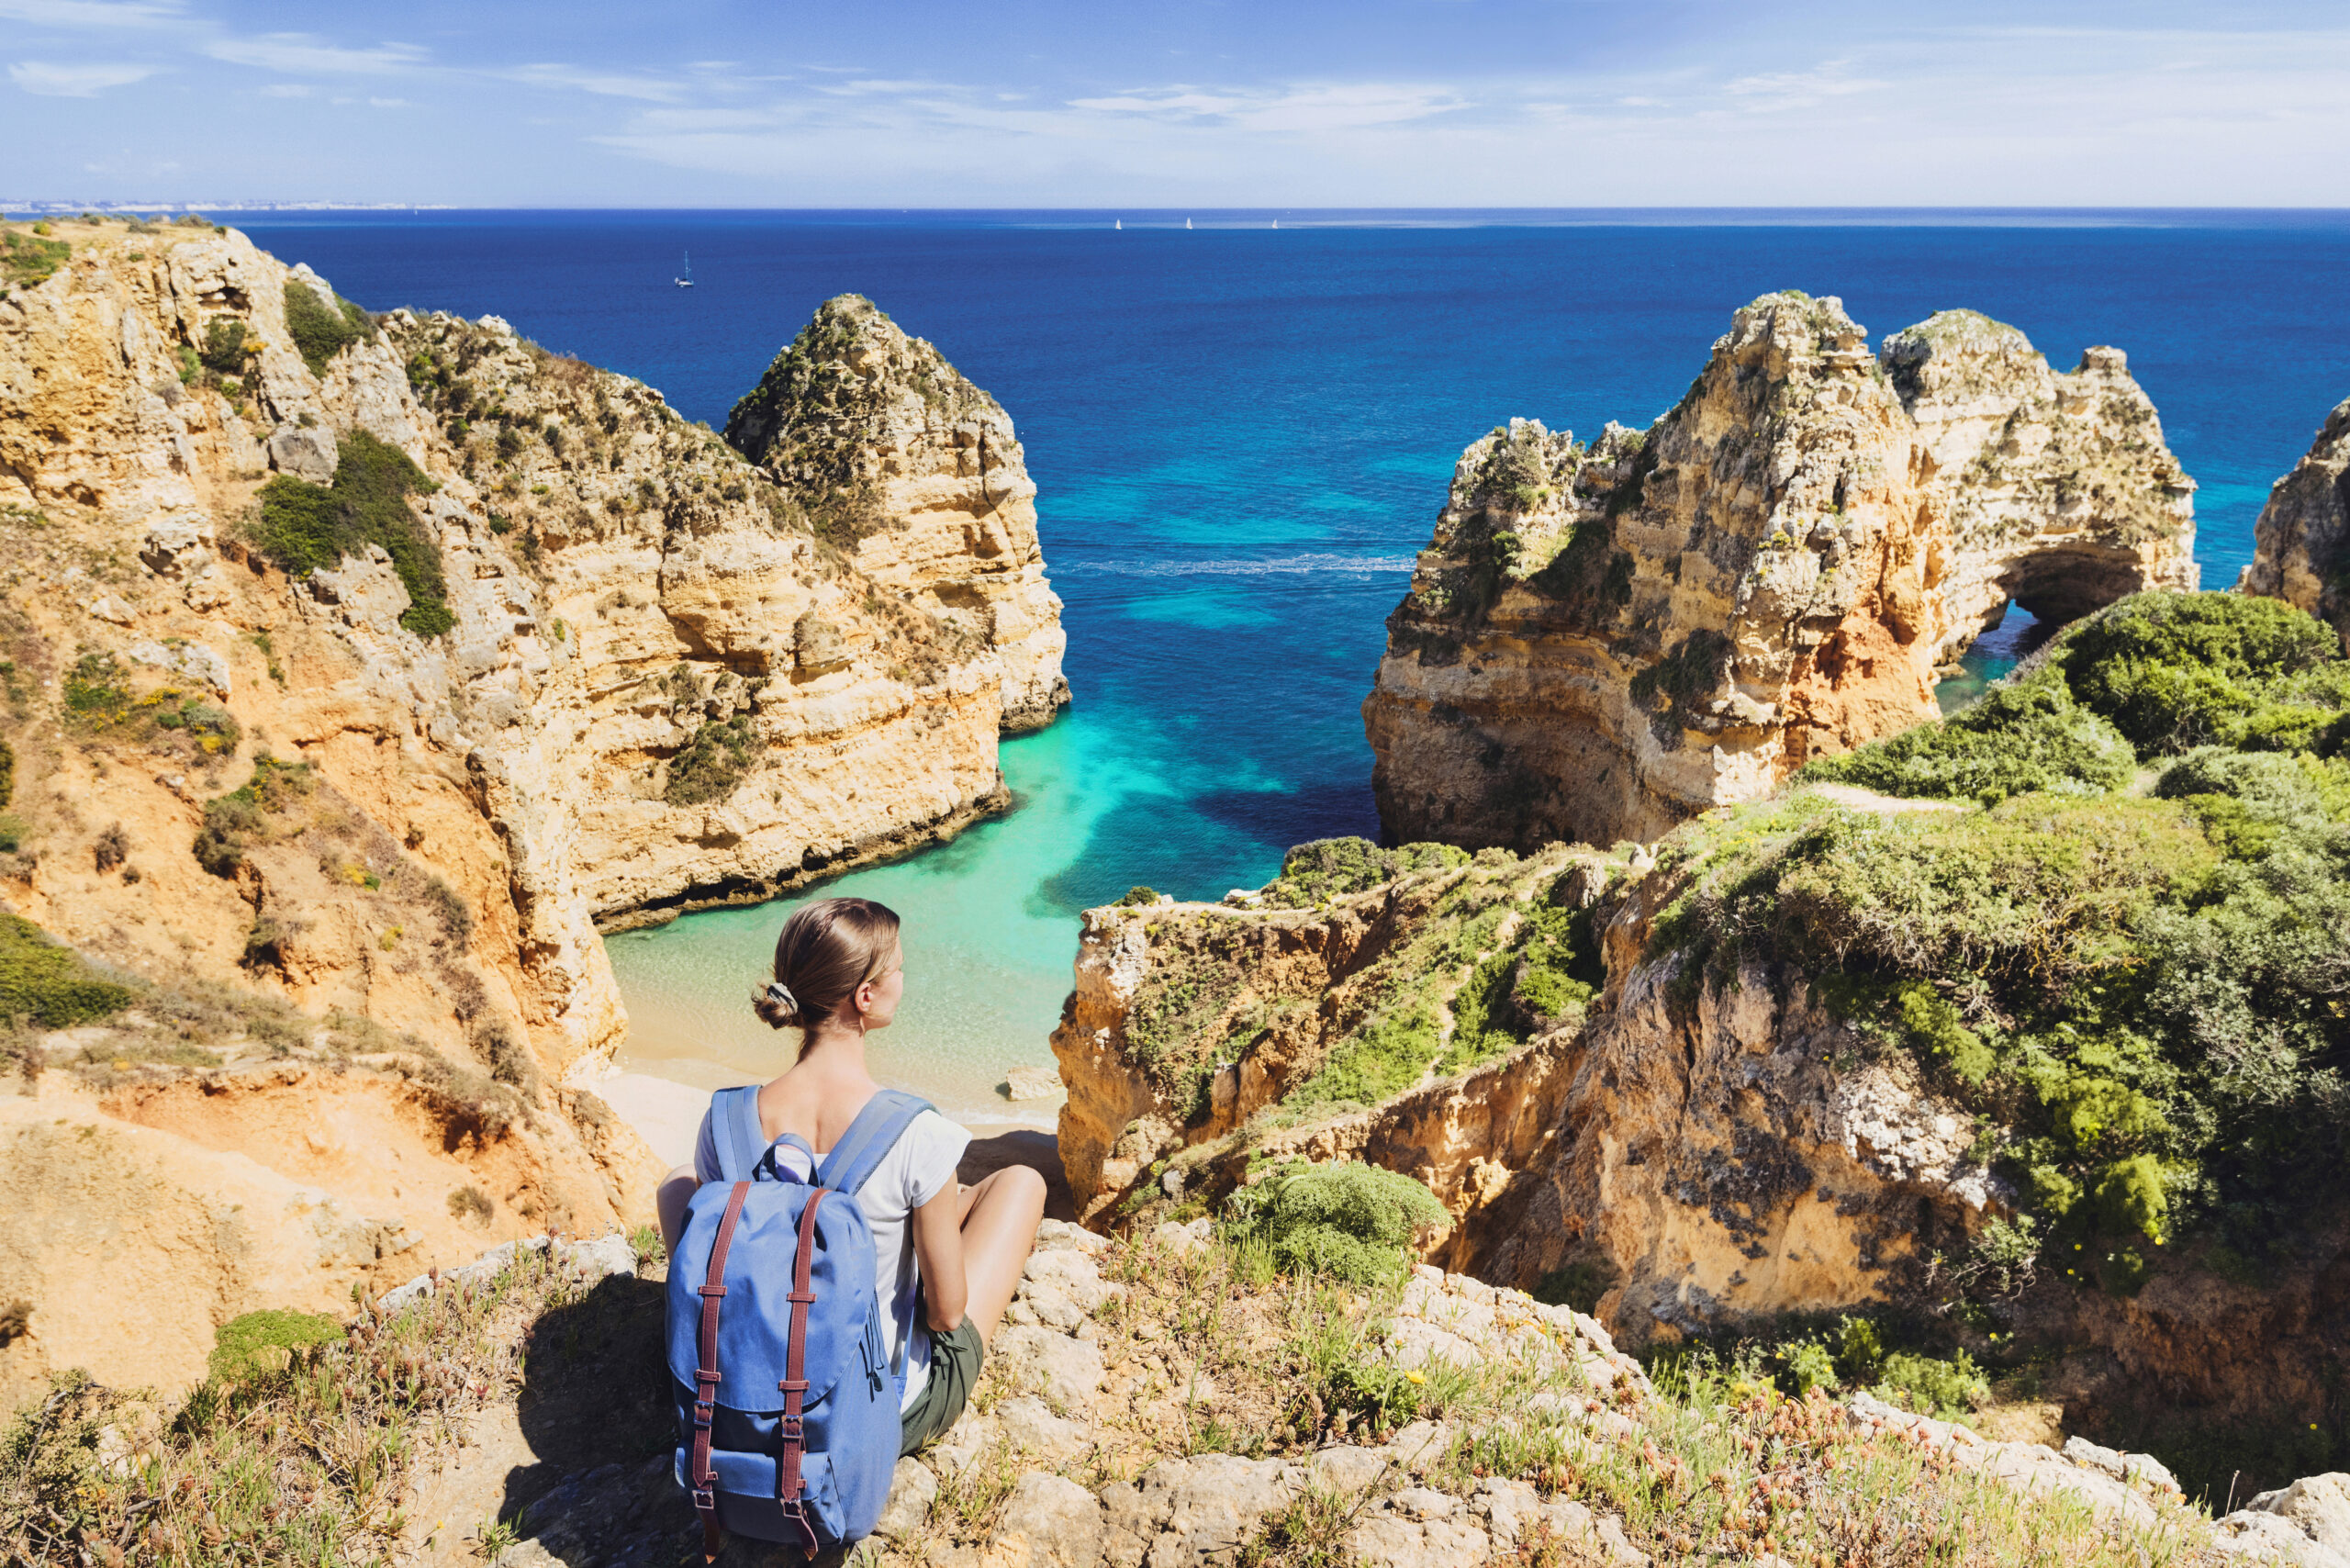 Backpacker in The Algarve, Portugal